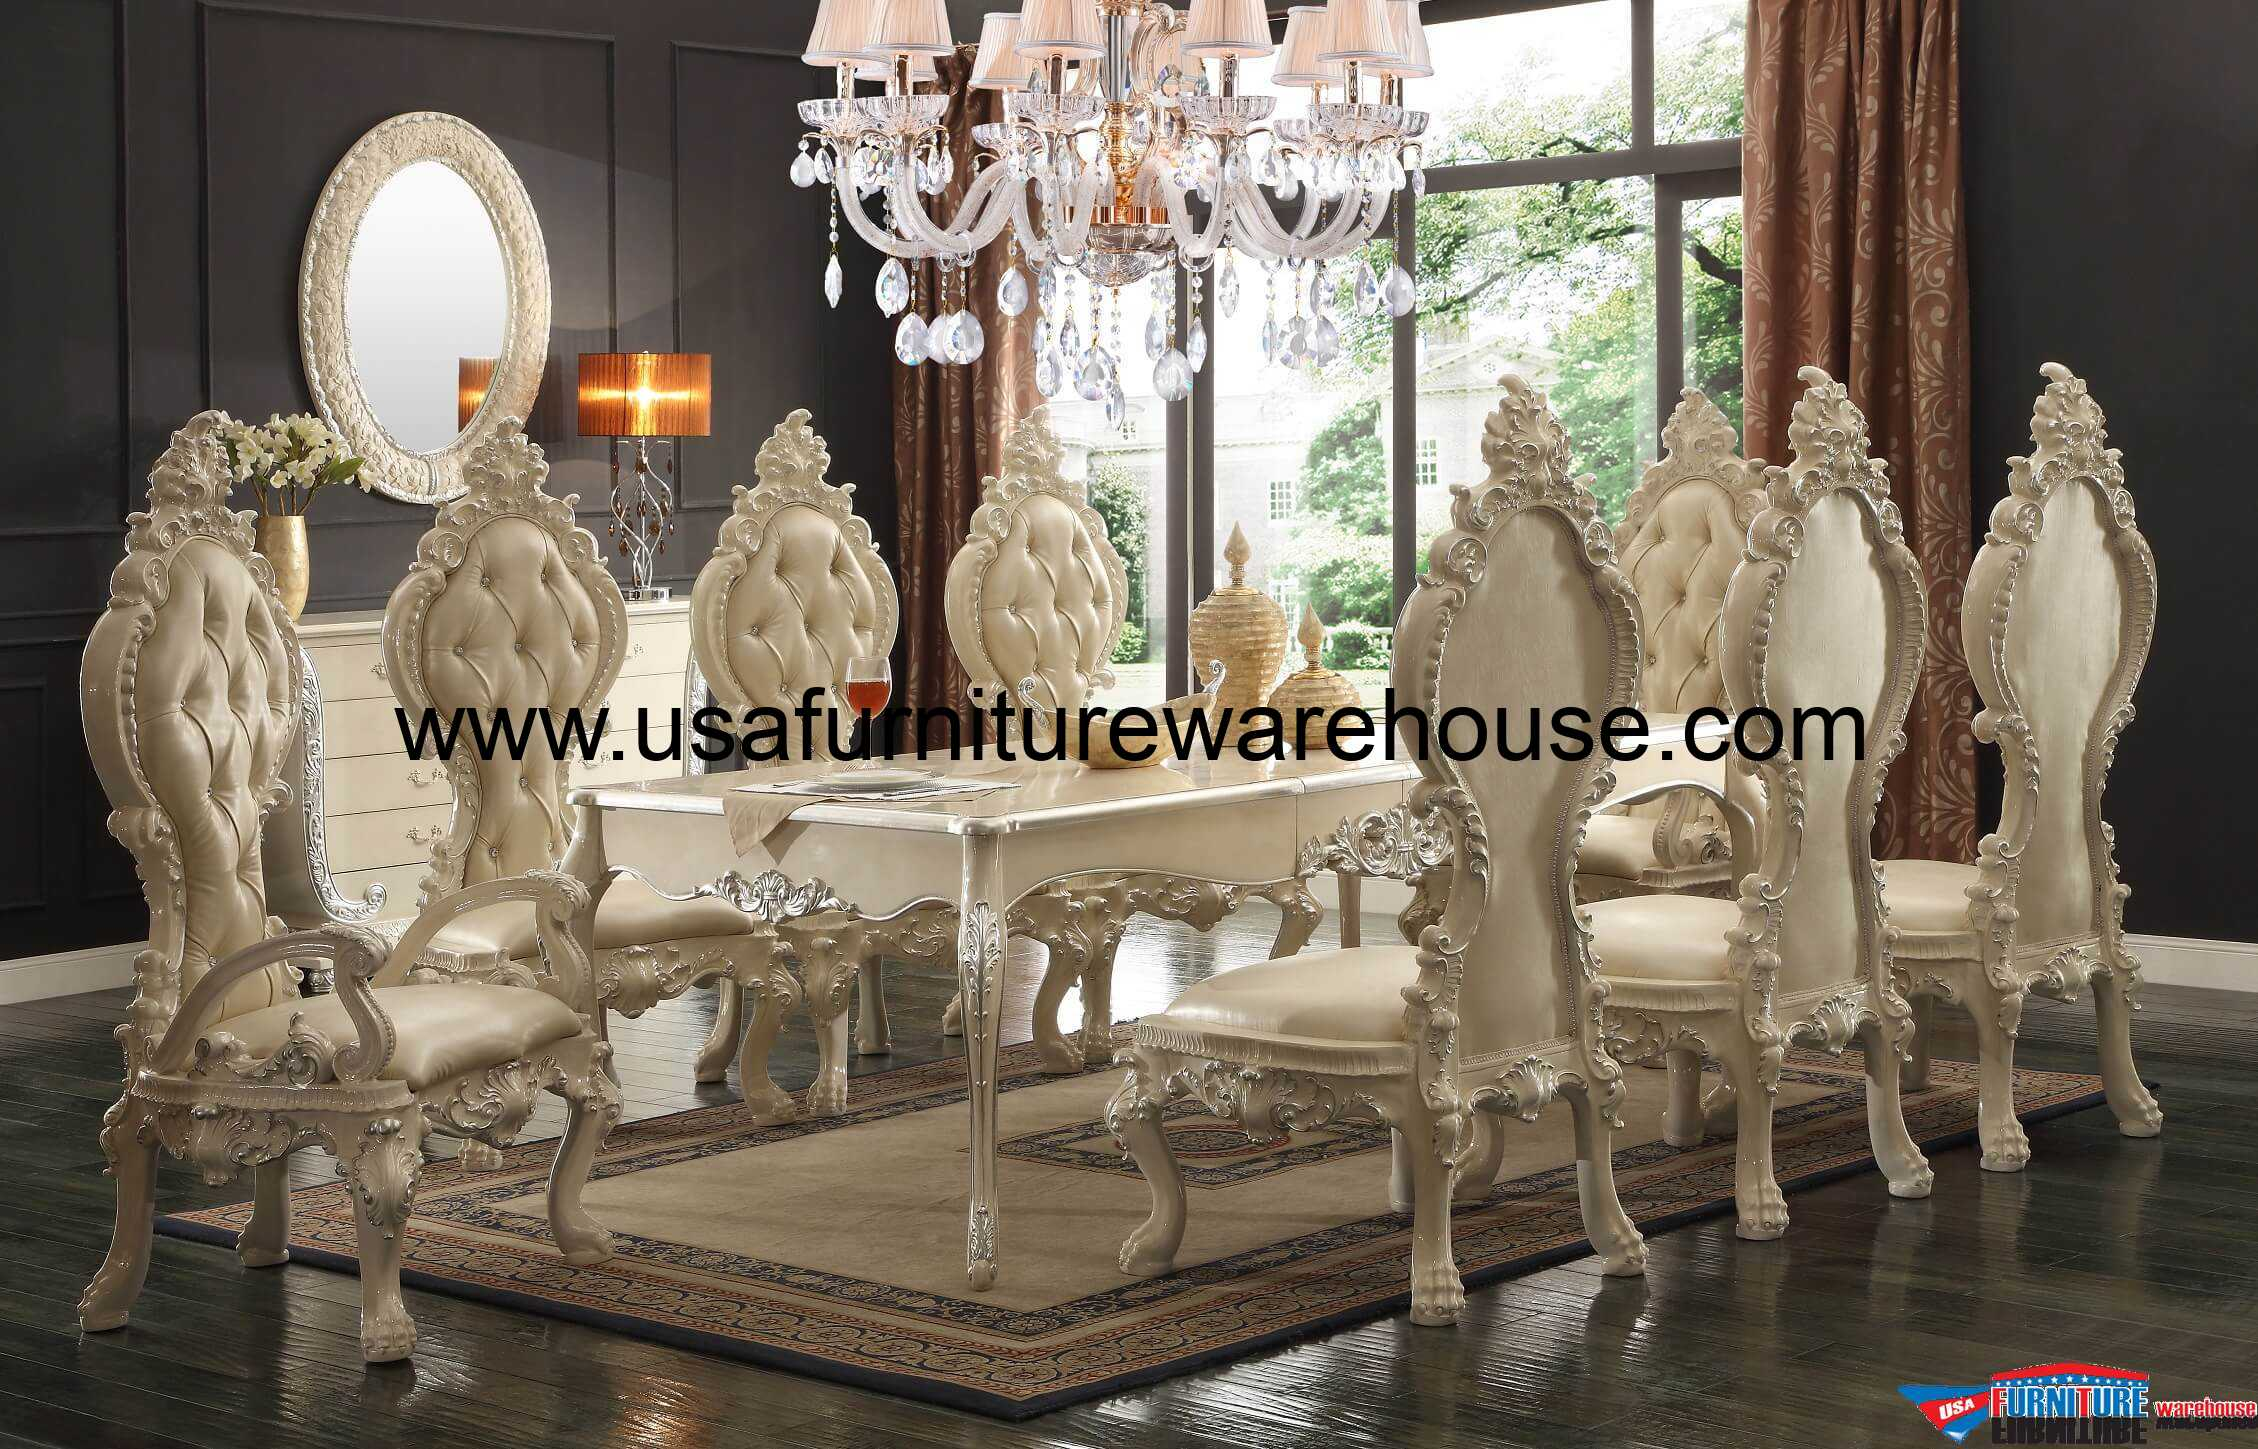 Hd 13012 homey design royal palace dining set for Hd designs home decor